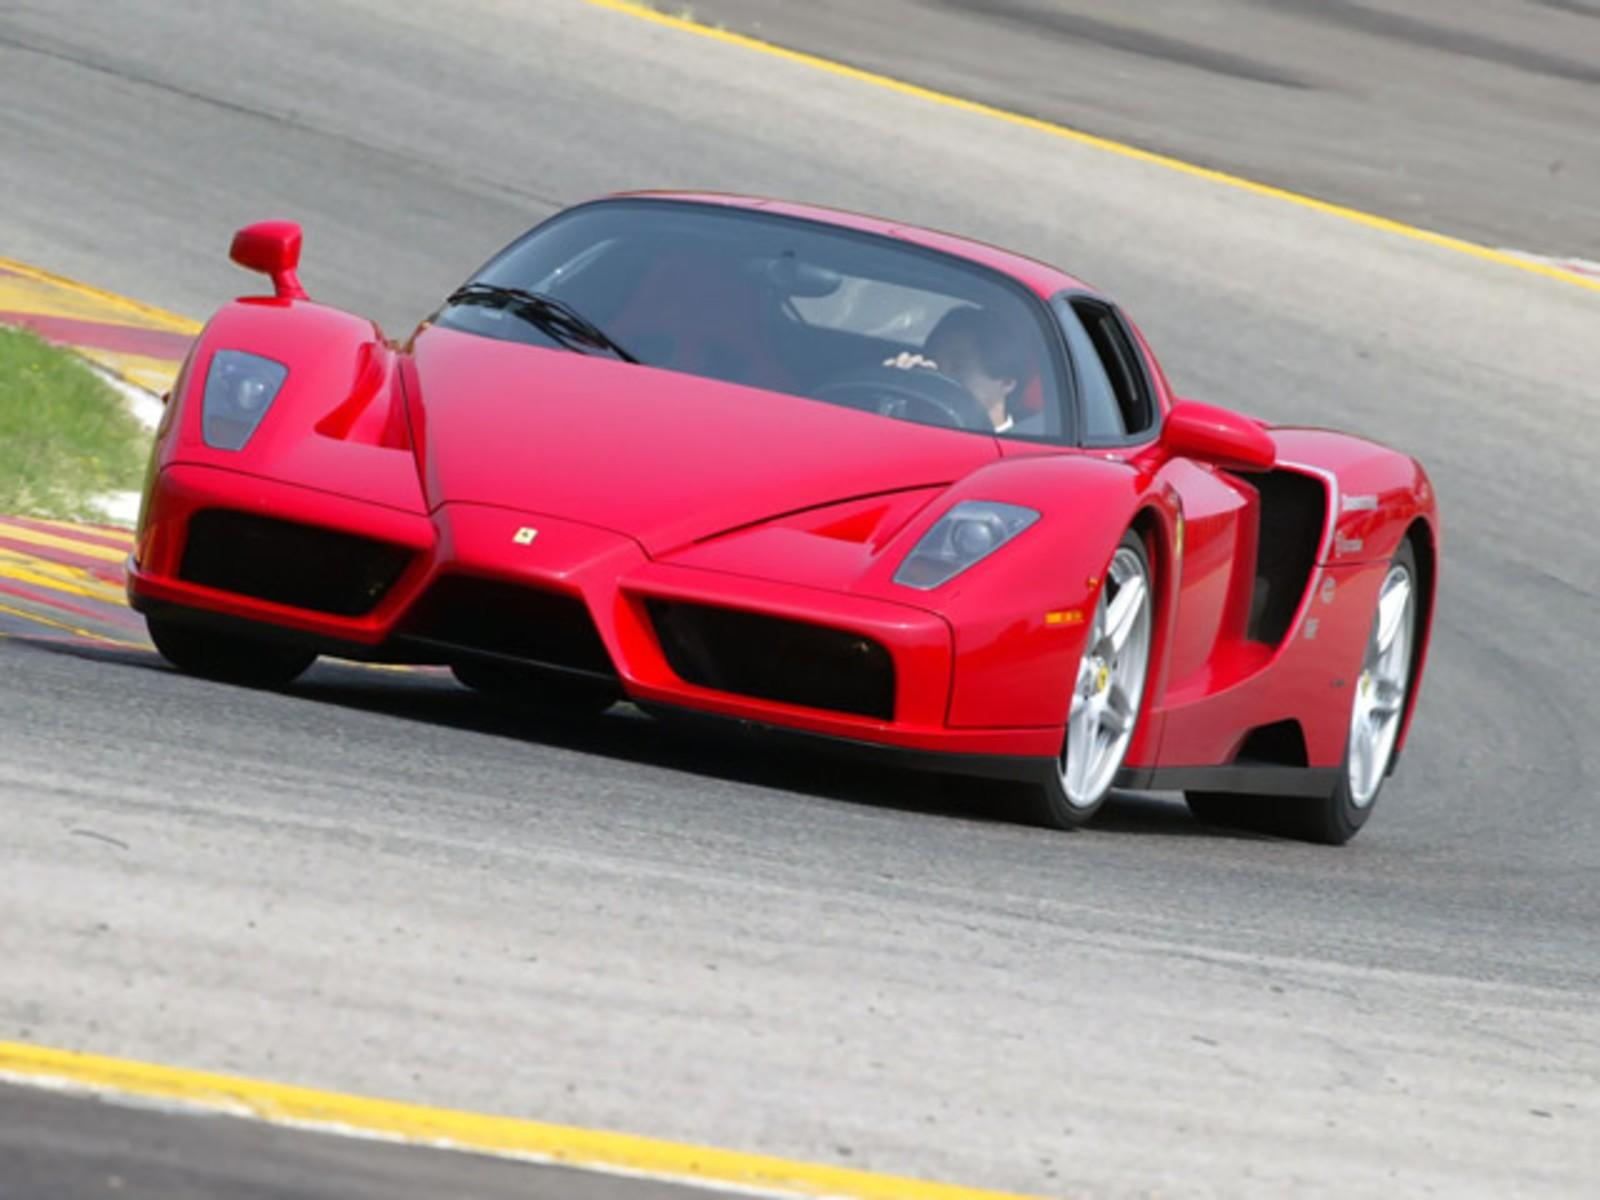 Ferrari Enzo News And Reviews | Top Sd on ferrari f310, ferrari f50, ferrari f2005, ferrari millechili, ferrari fxx, ferrari 458 italia, ferrari f2004, ferrari f type, ferrari f10, ferrari 458 speciale wallpaper, red bull rb5, ferrari f2008, ferrari f2007, ferrari f70, ferrari f2003-ga, lamborghini enzo, f40 f50 enzo, ferrari f2002, gemballa enzo, ferrari 412t, ferrari f399, williams fw31, ferrari 288 gto, ferrari 612 scaglietti, ferrari 2002 models, ferrari f92a, ferrari f2001, ferrari 248 f1, ferrari f1-2000, ferrari f300, ferrari f93a, ferrari 599 gto,